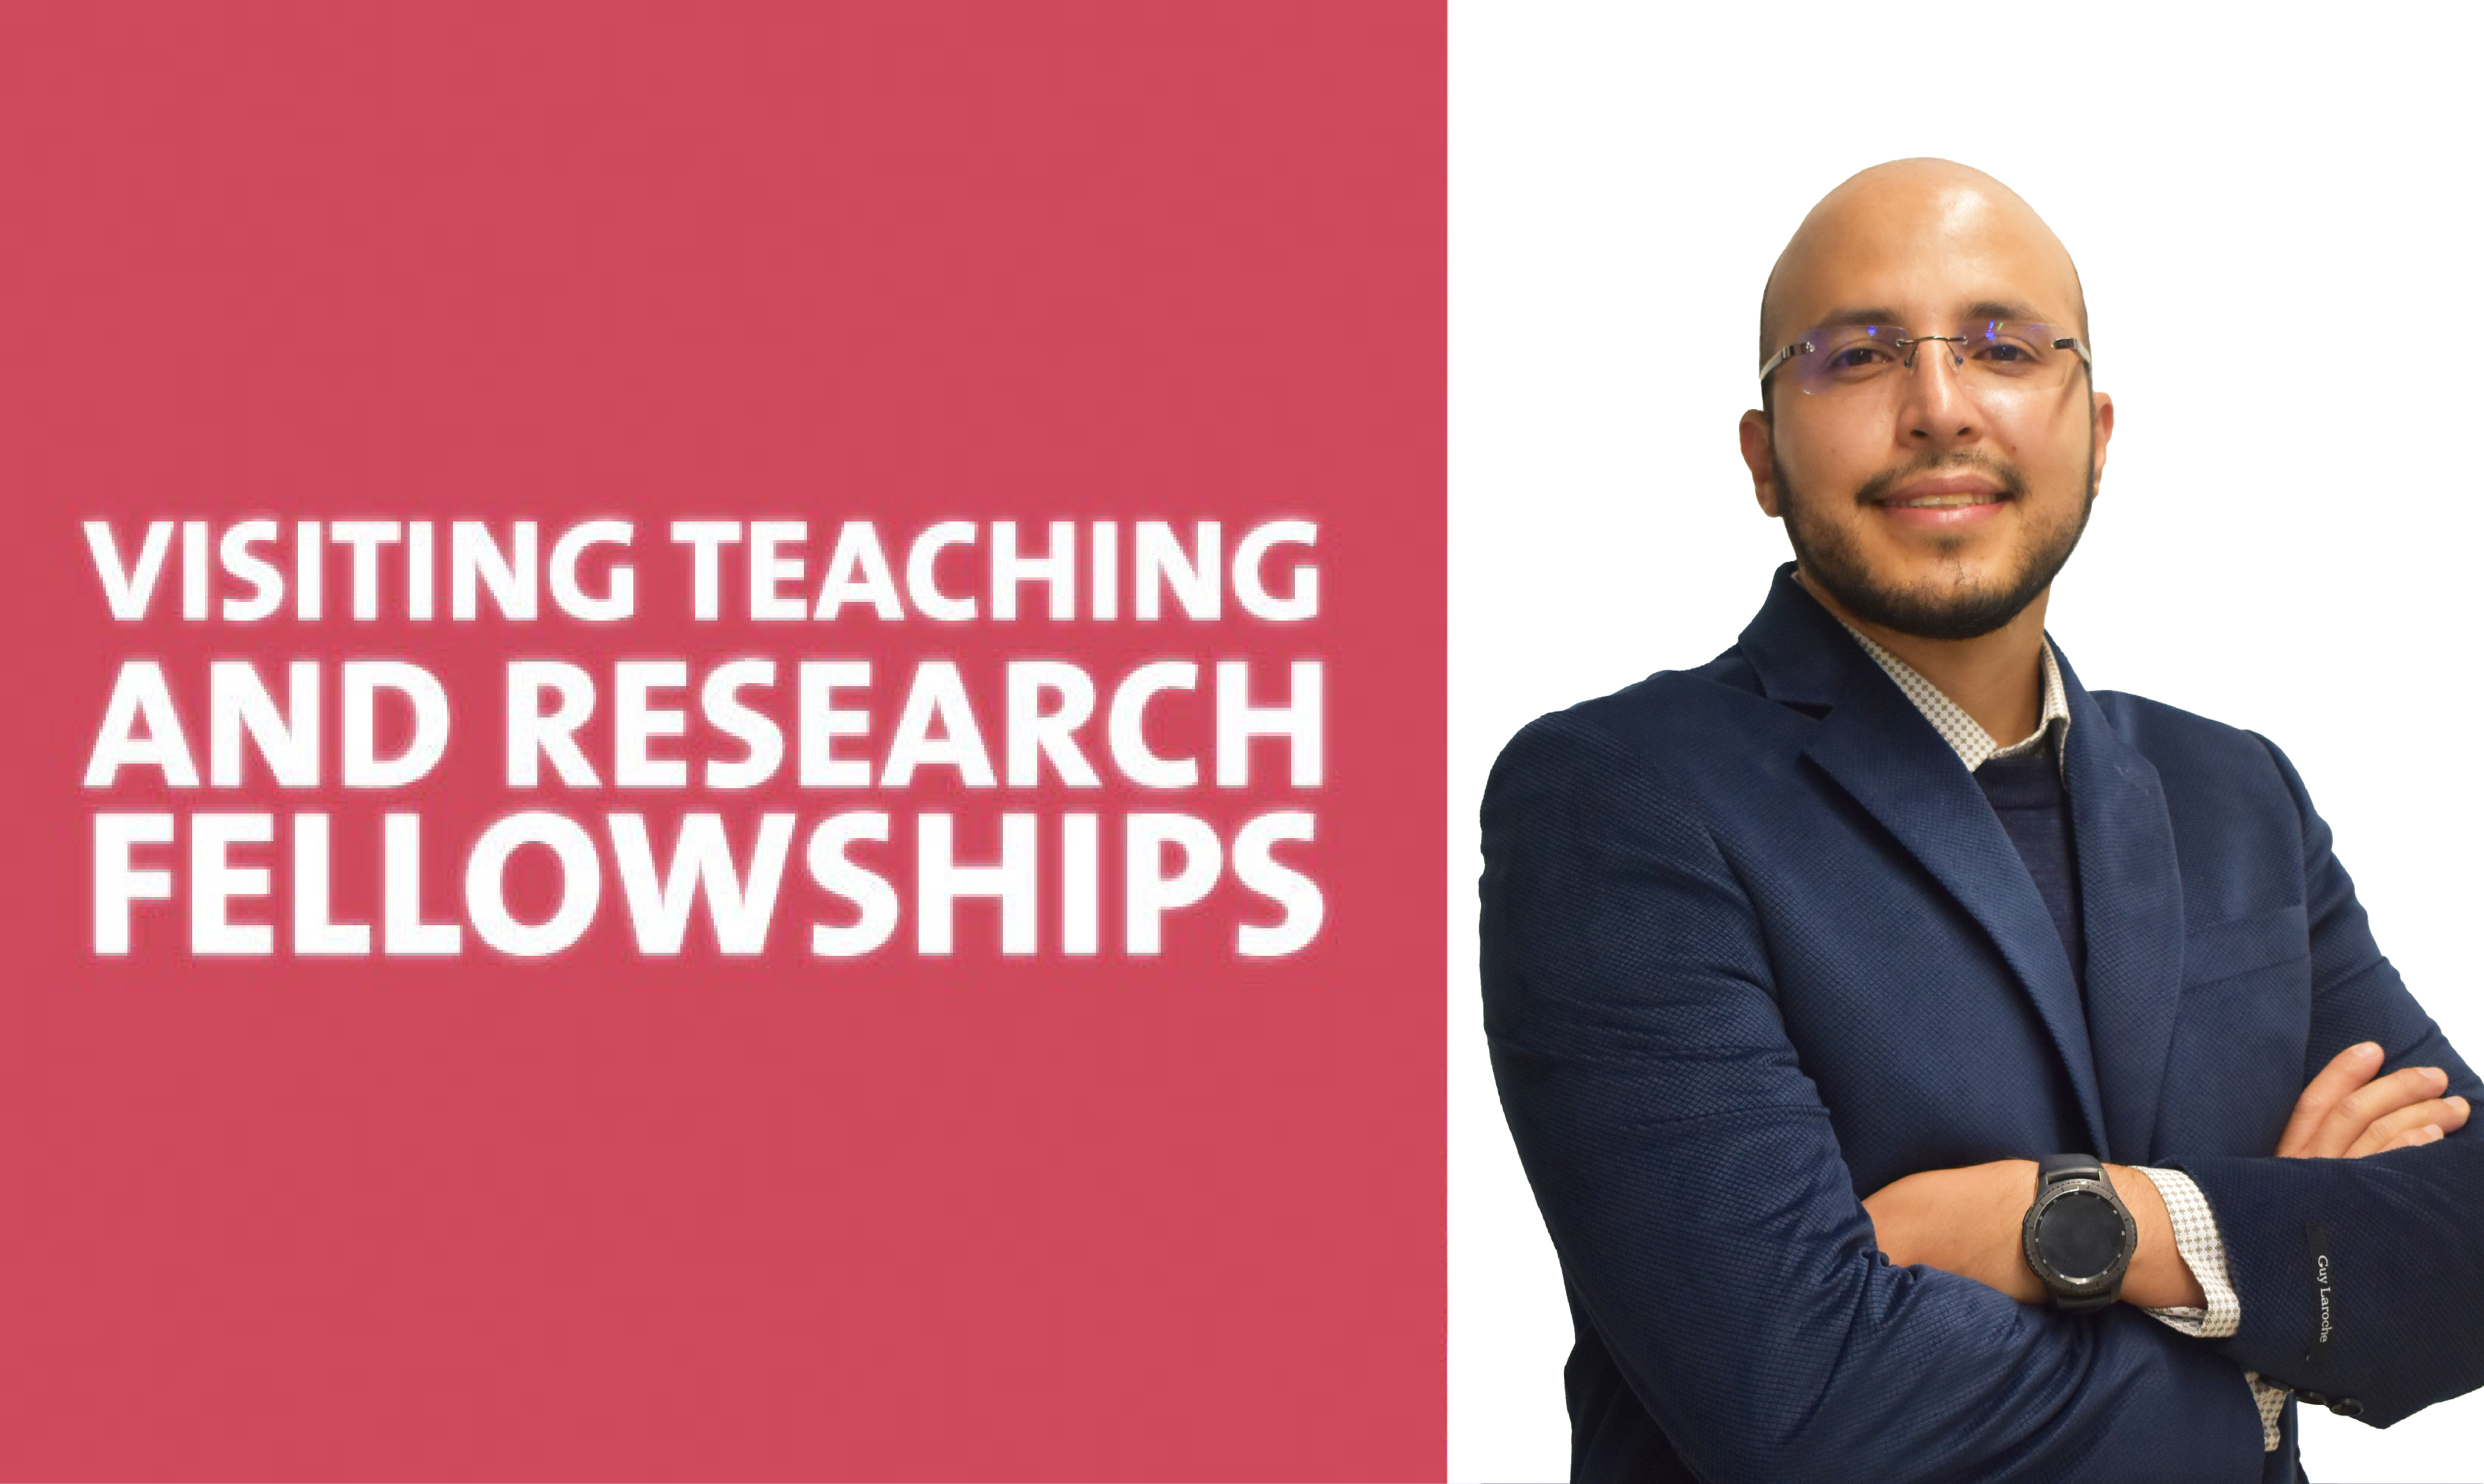 Visiting Teaching and Research Fellowships